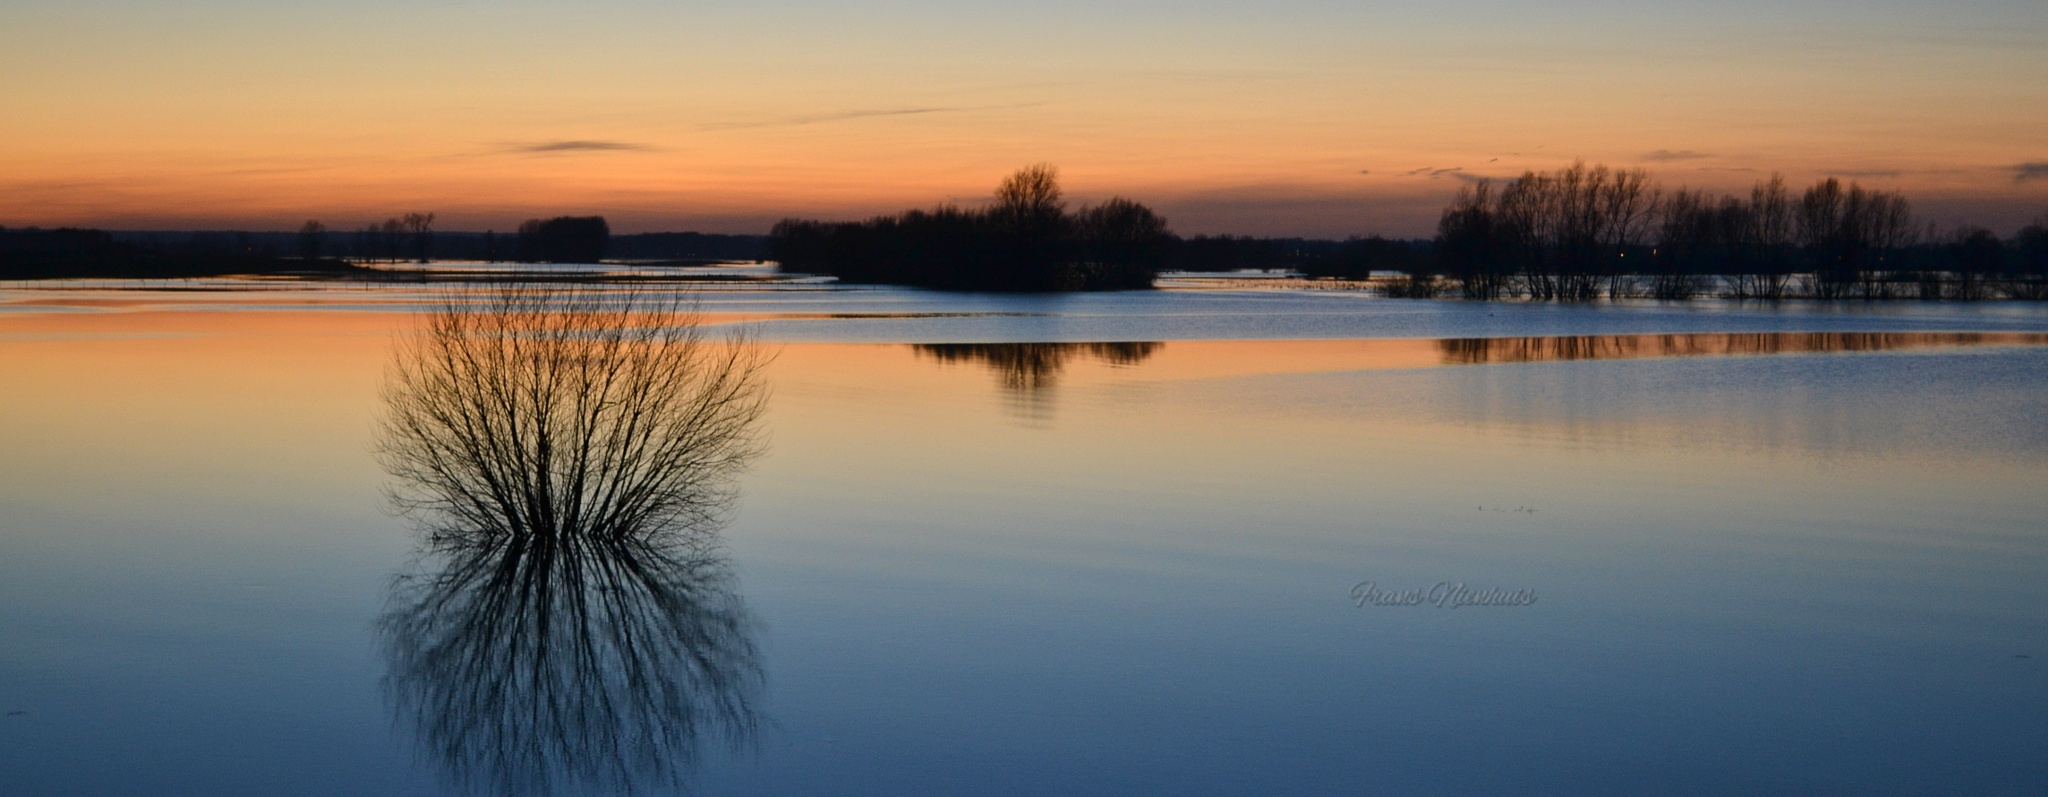 Glow with the flow by Frans Nienhuis